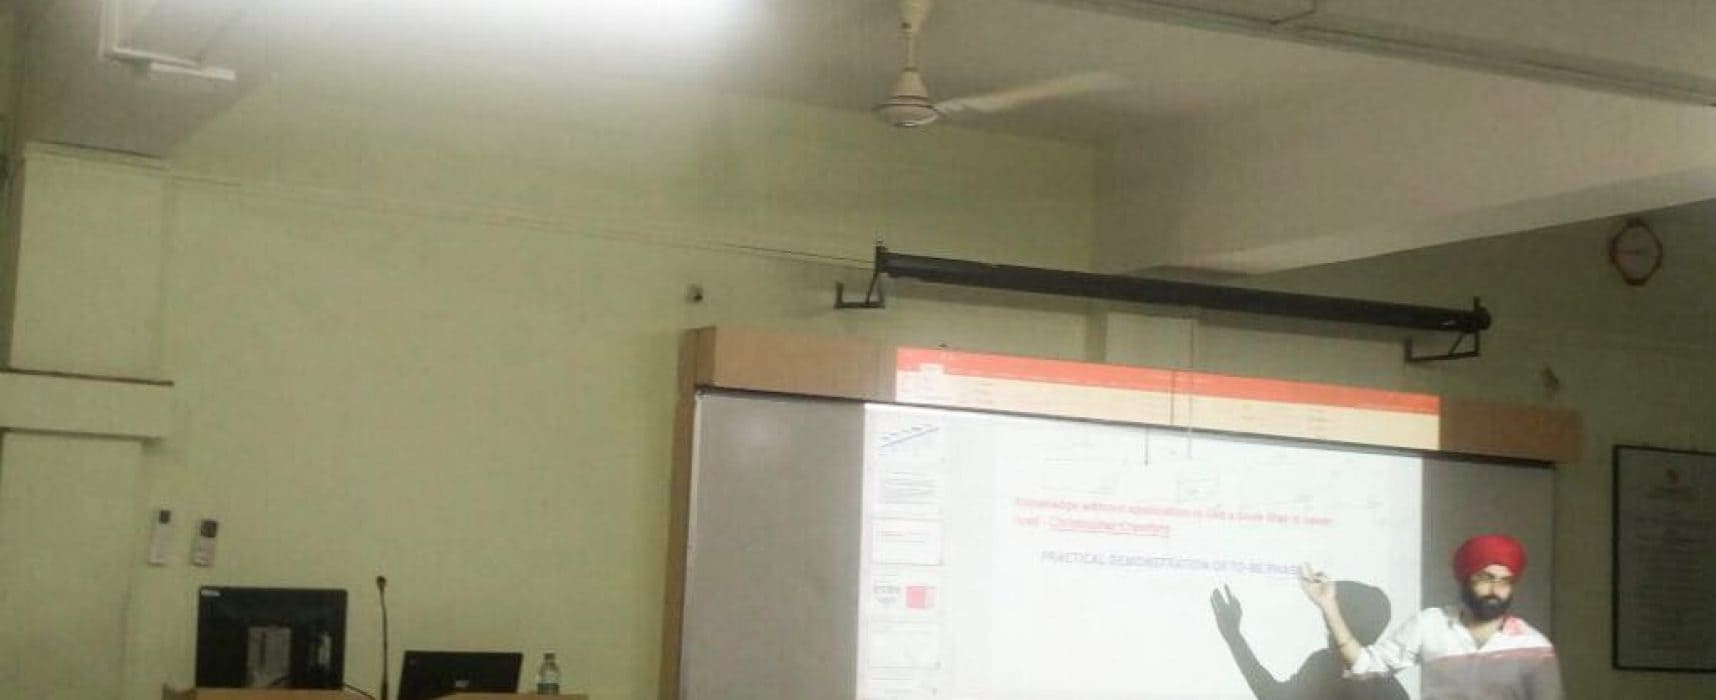 Guest Lecture on Data Analytics in ITSM